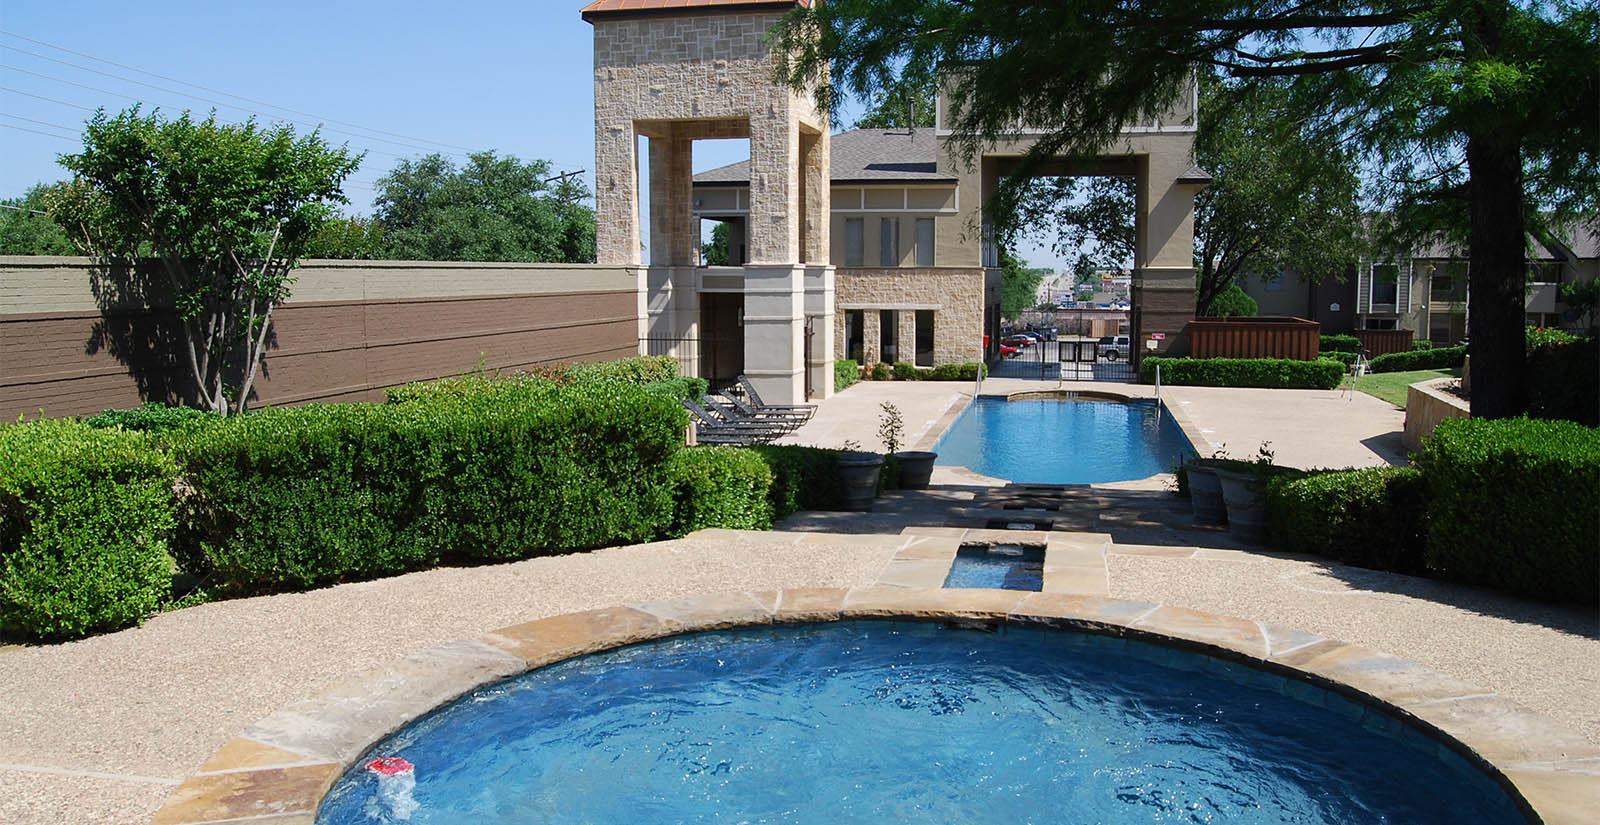 Apartment pool in irving